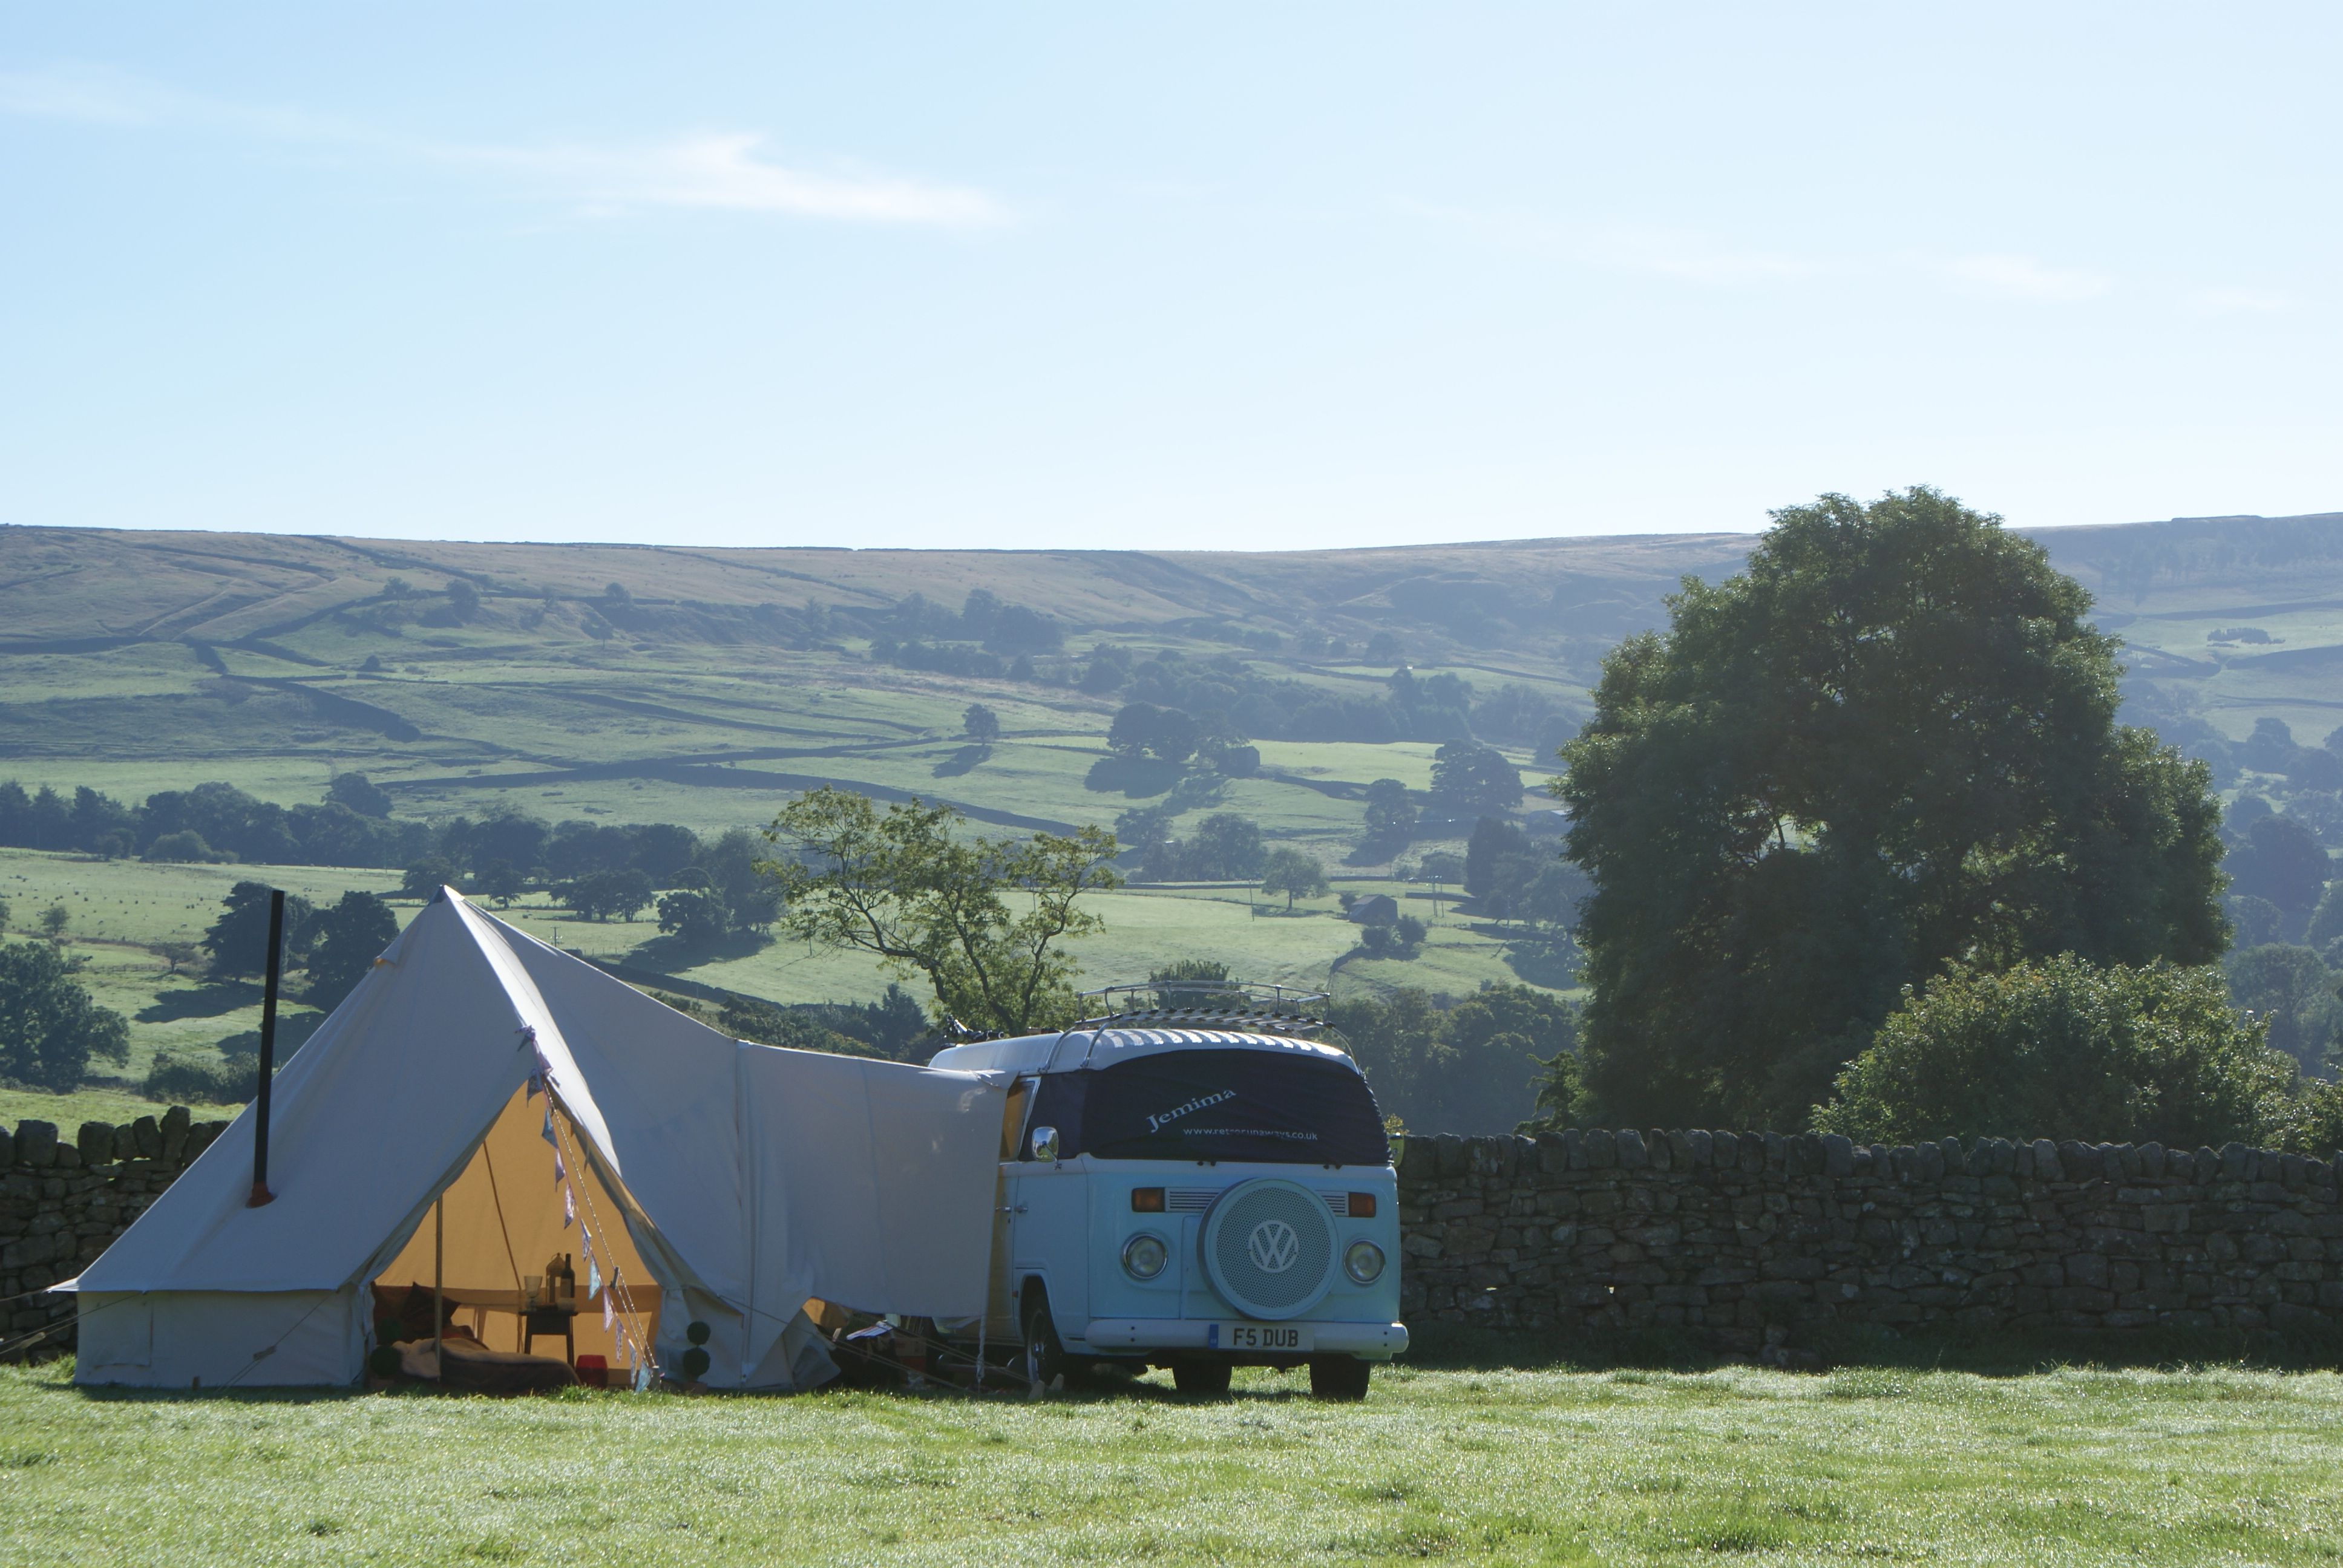 T5s Look Very Swish With Our Drive Away Bell Tent Awning On The Side Innovative Glamping Youll Never Back